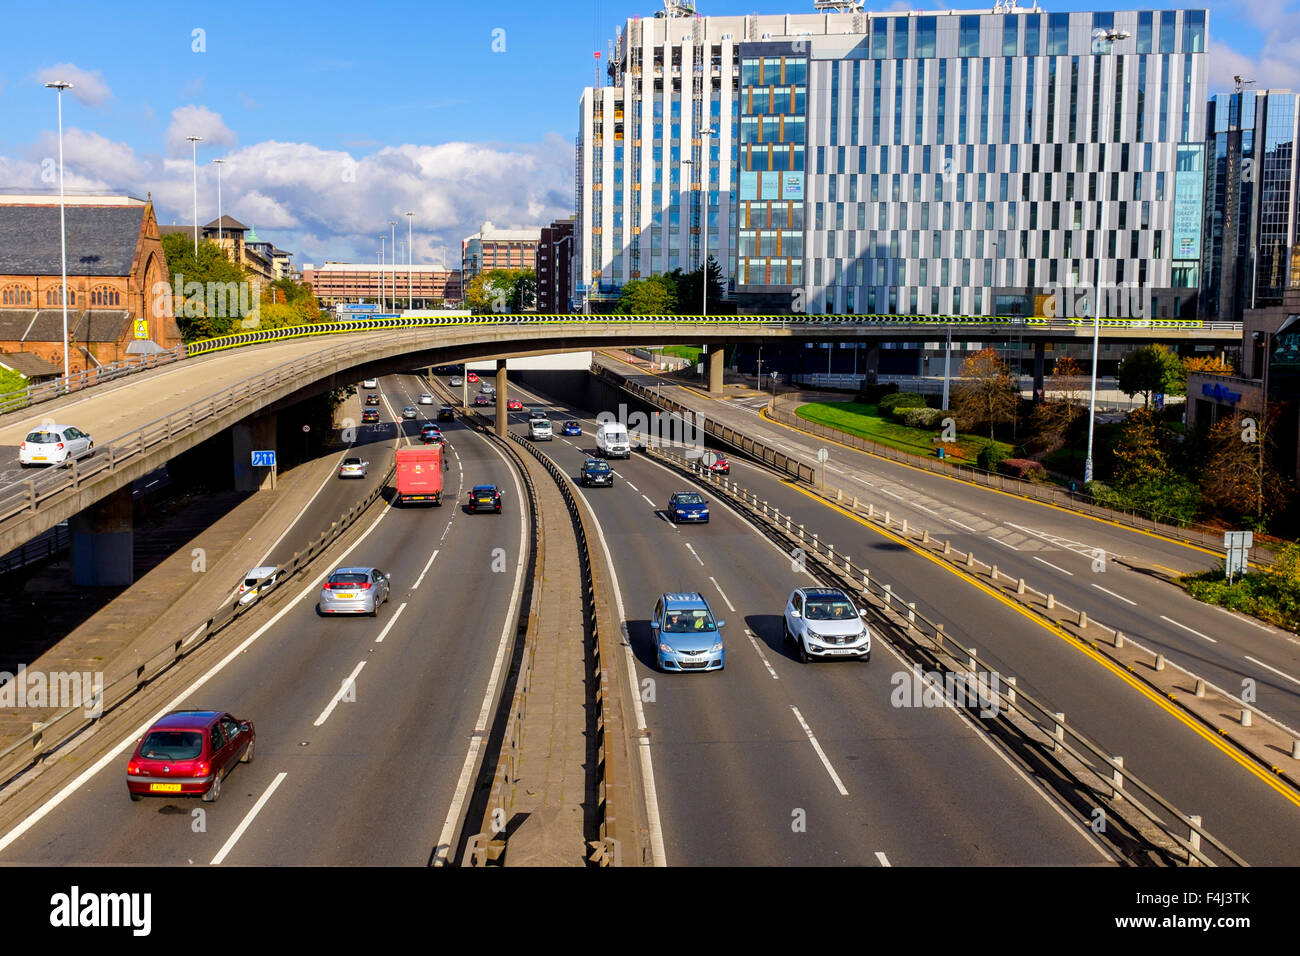 Charing Cross interchange with the M8 motorway, Glasgow city centre, Scotland, UK - Stock Image